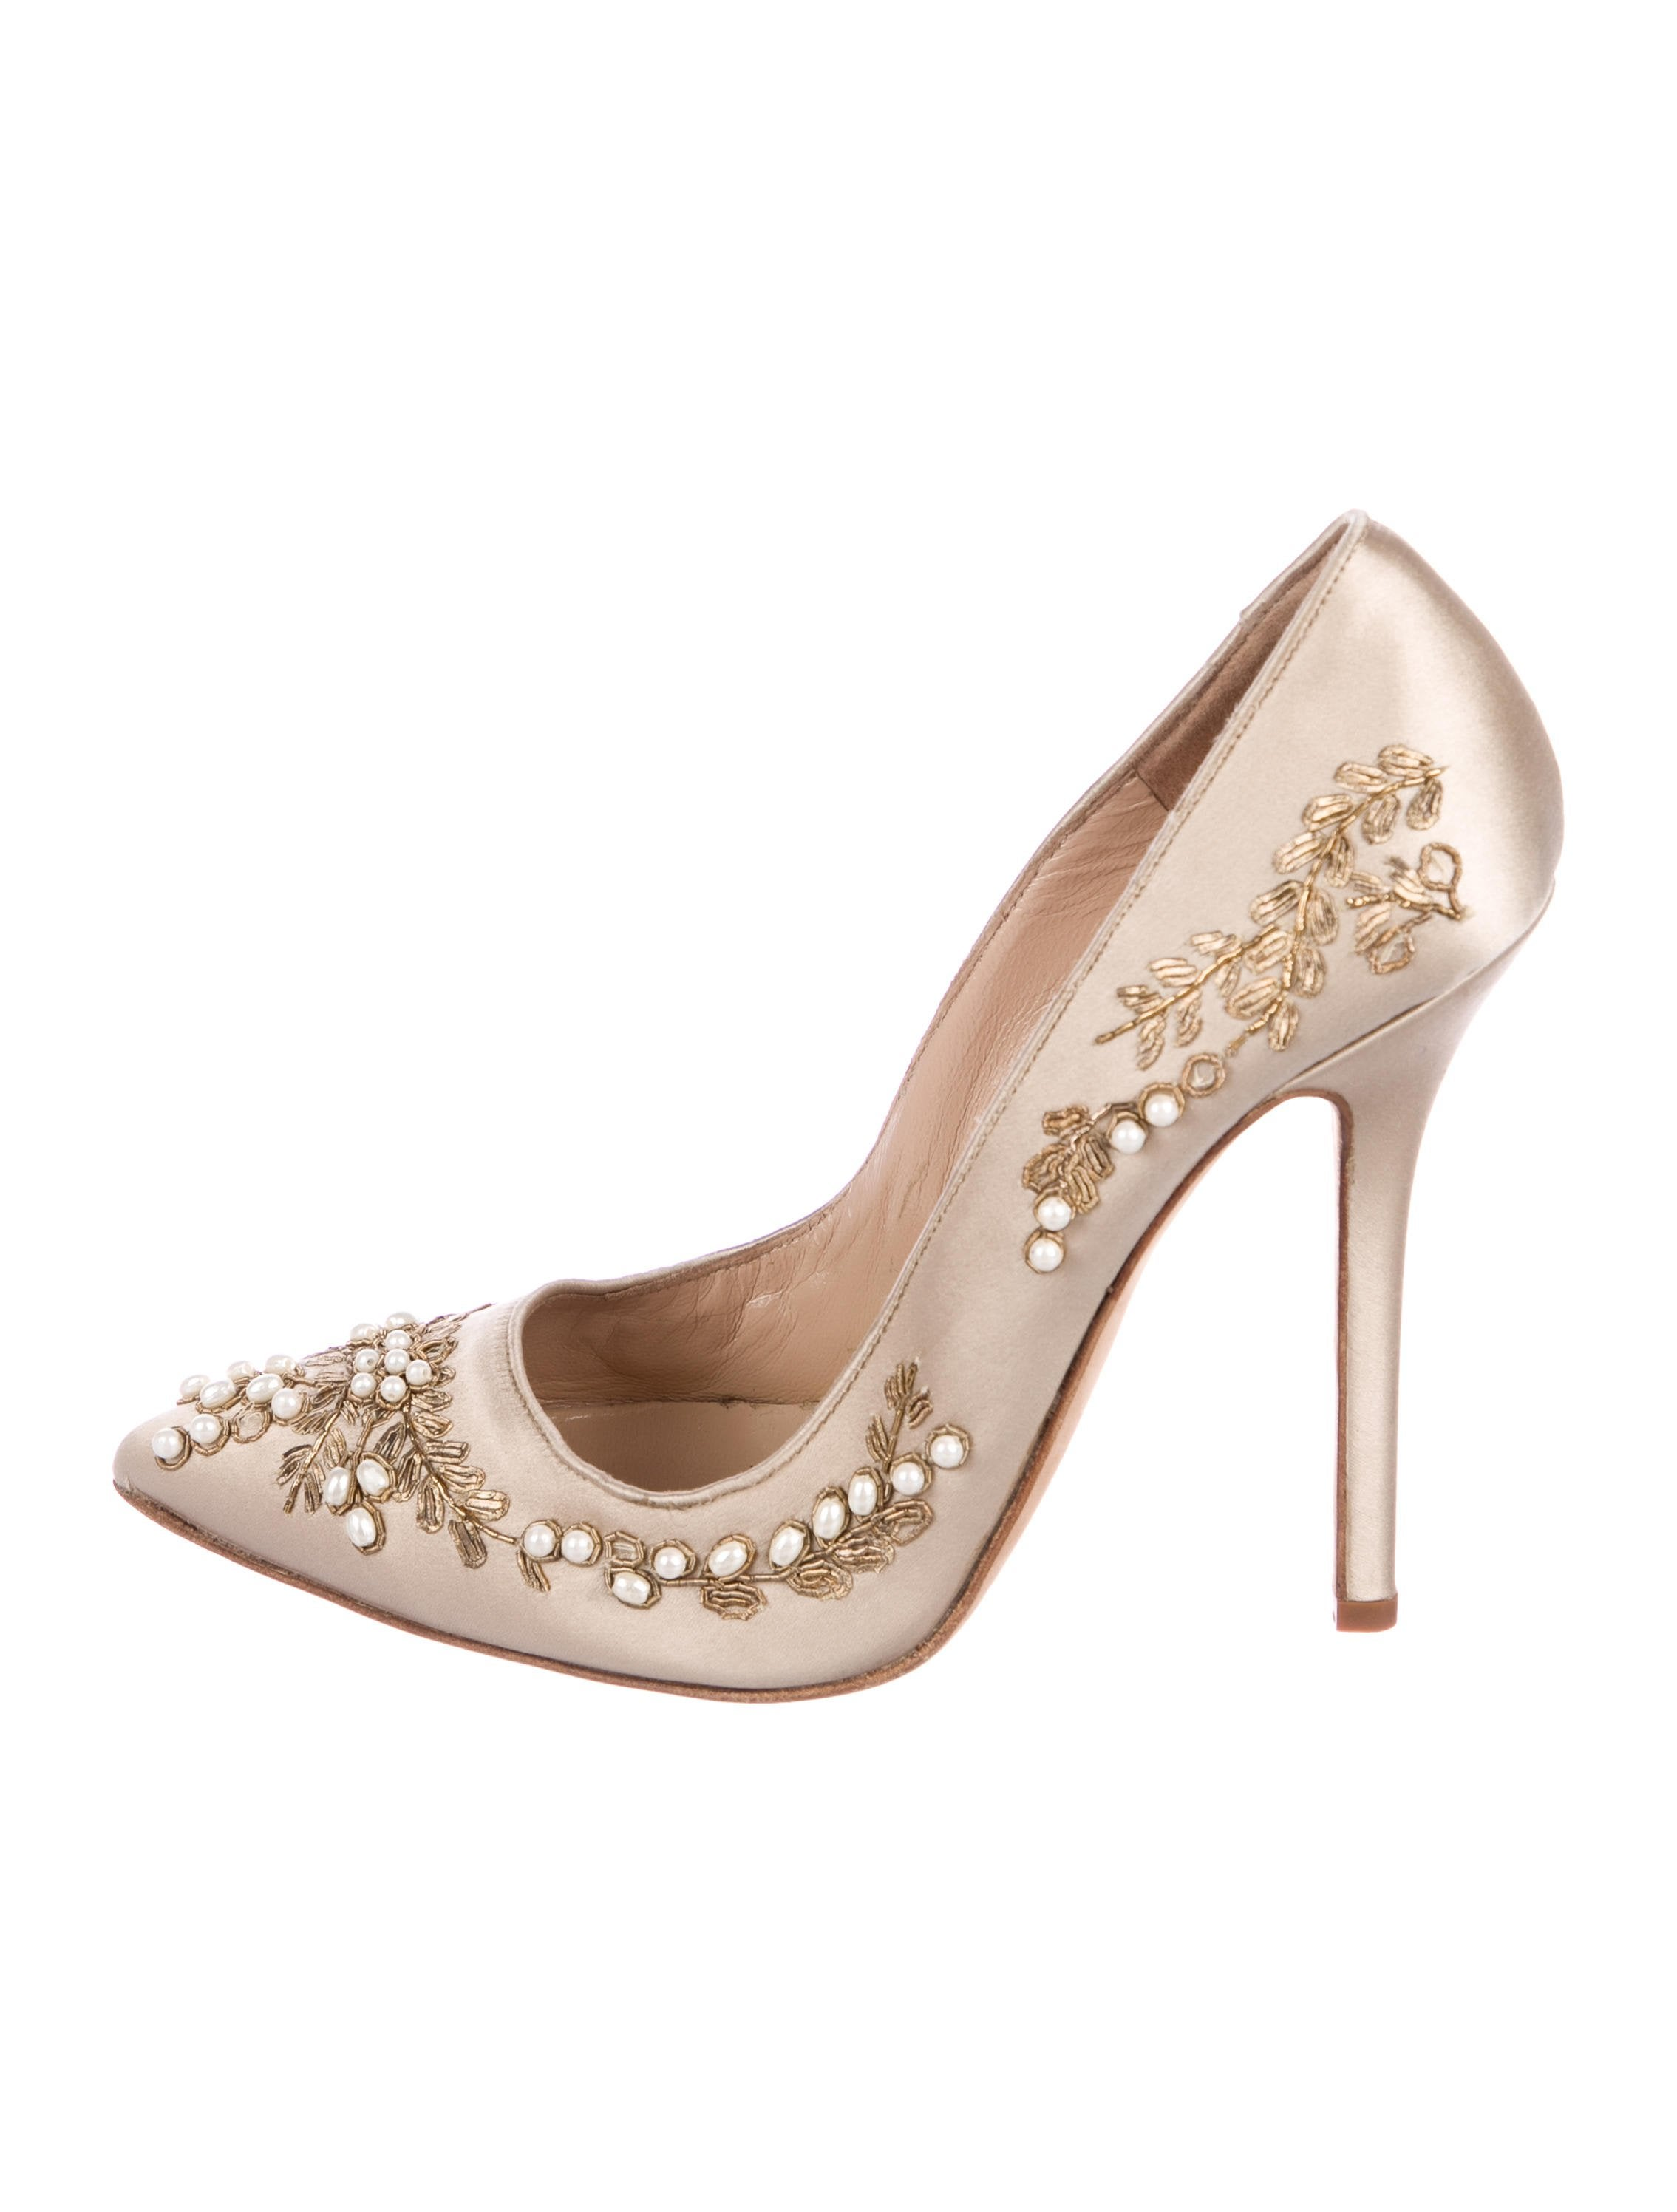 430ff3ed1e7b Oscar de la Renta Satin Embellished Pumps - Shoes - OSC83170